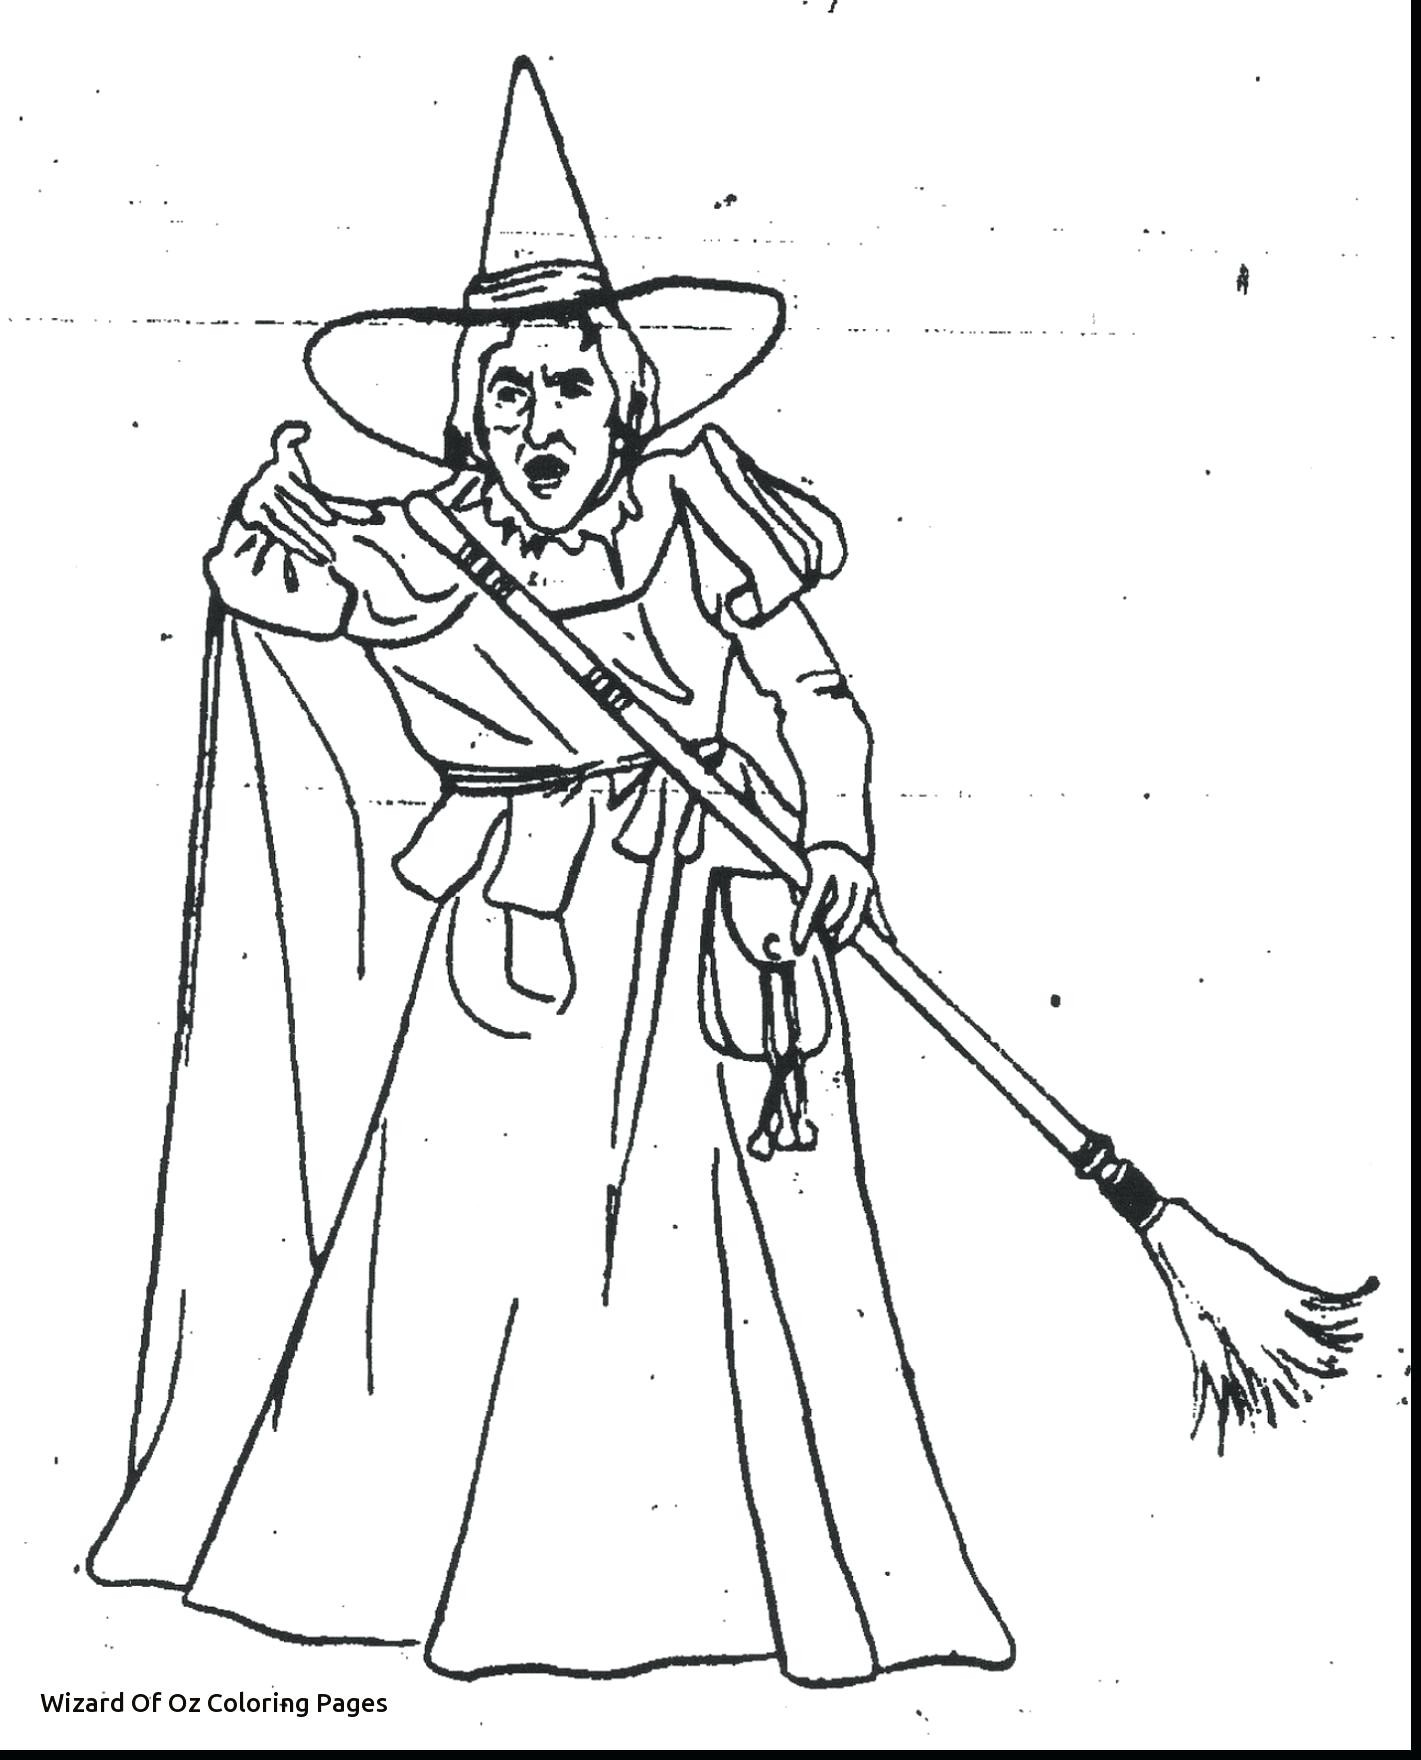 The Wizard Of Oz Coloring Pages  Printable 9n - Free For Children